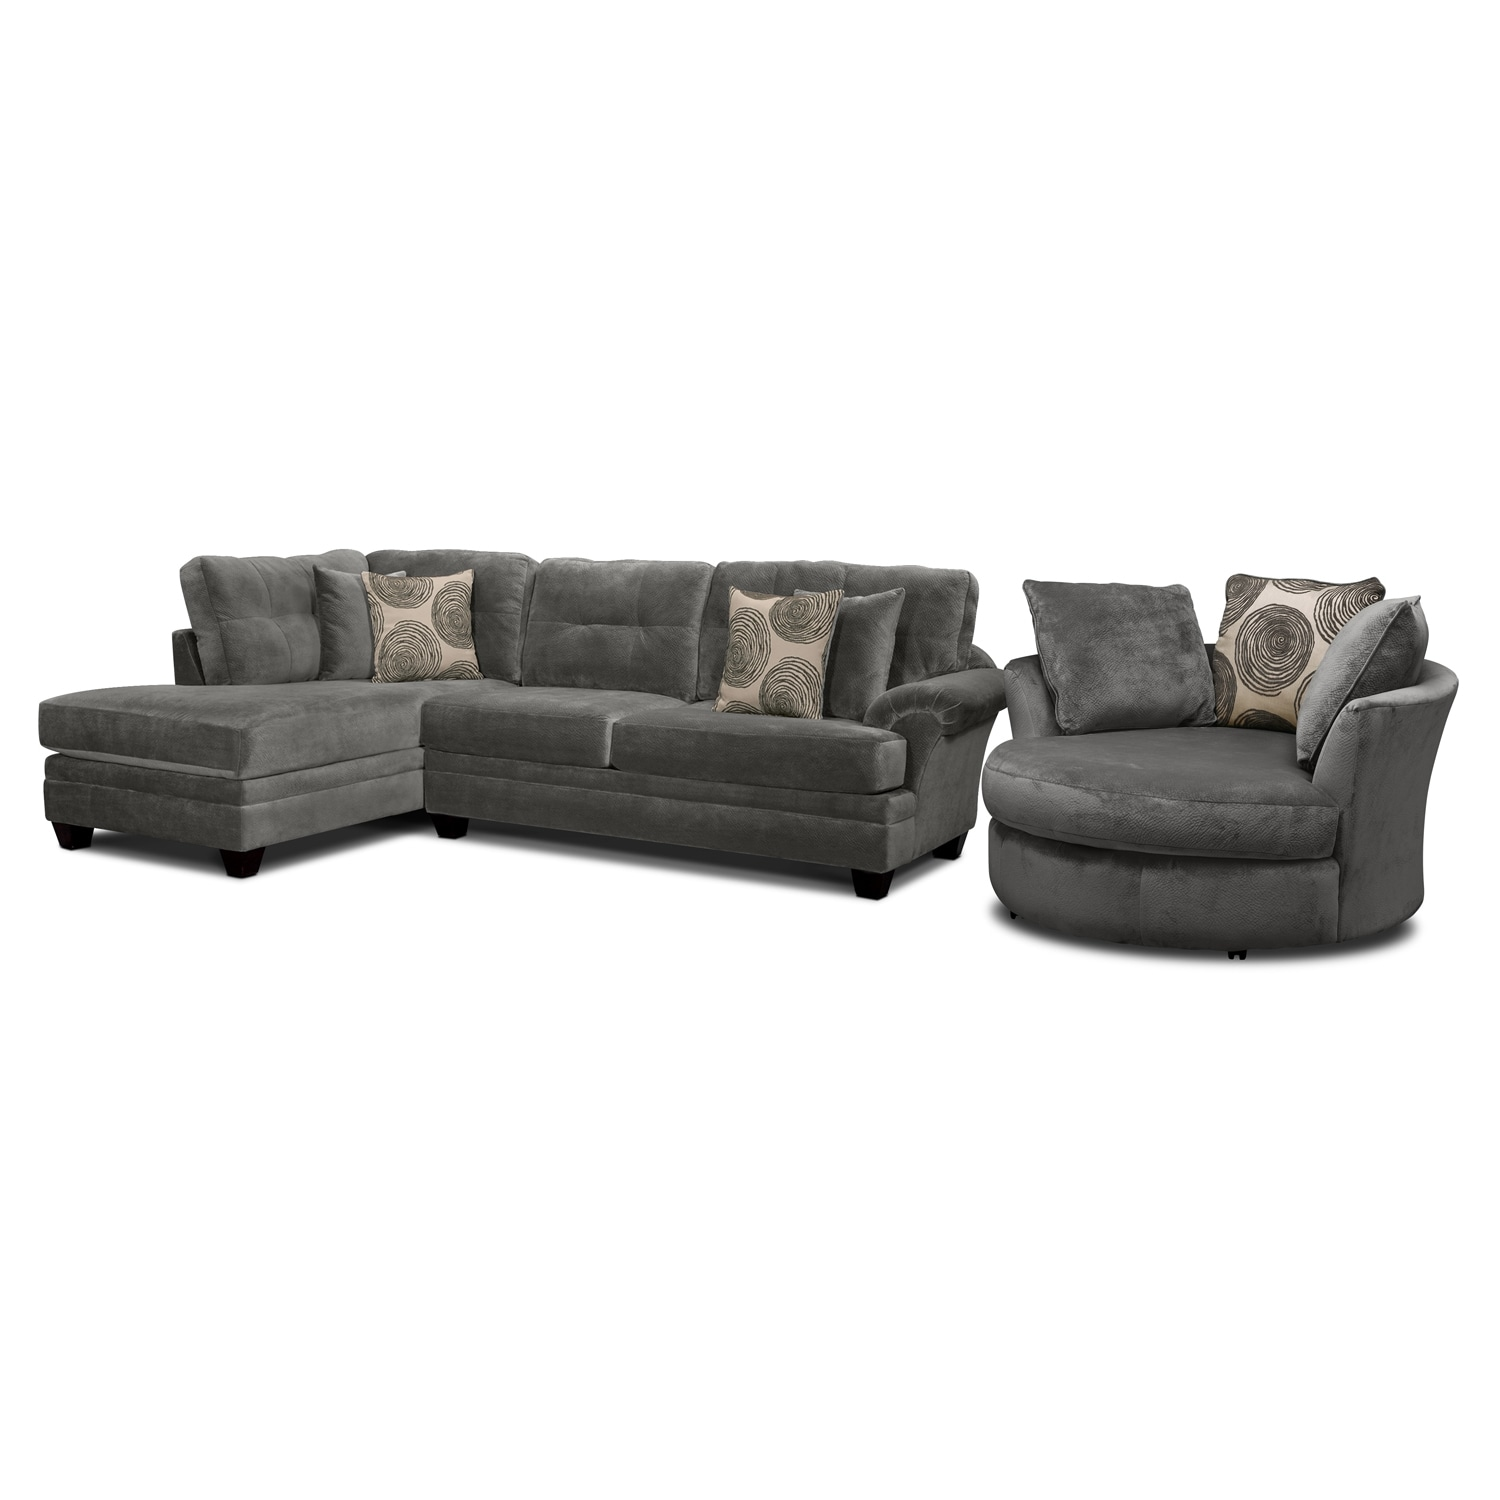 Cordelle 2-Piece Left-Facing Chaise Sectional and Swivel Chair Set - Gray